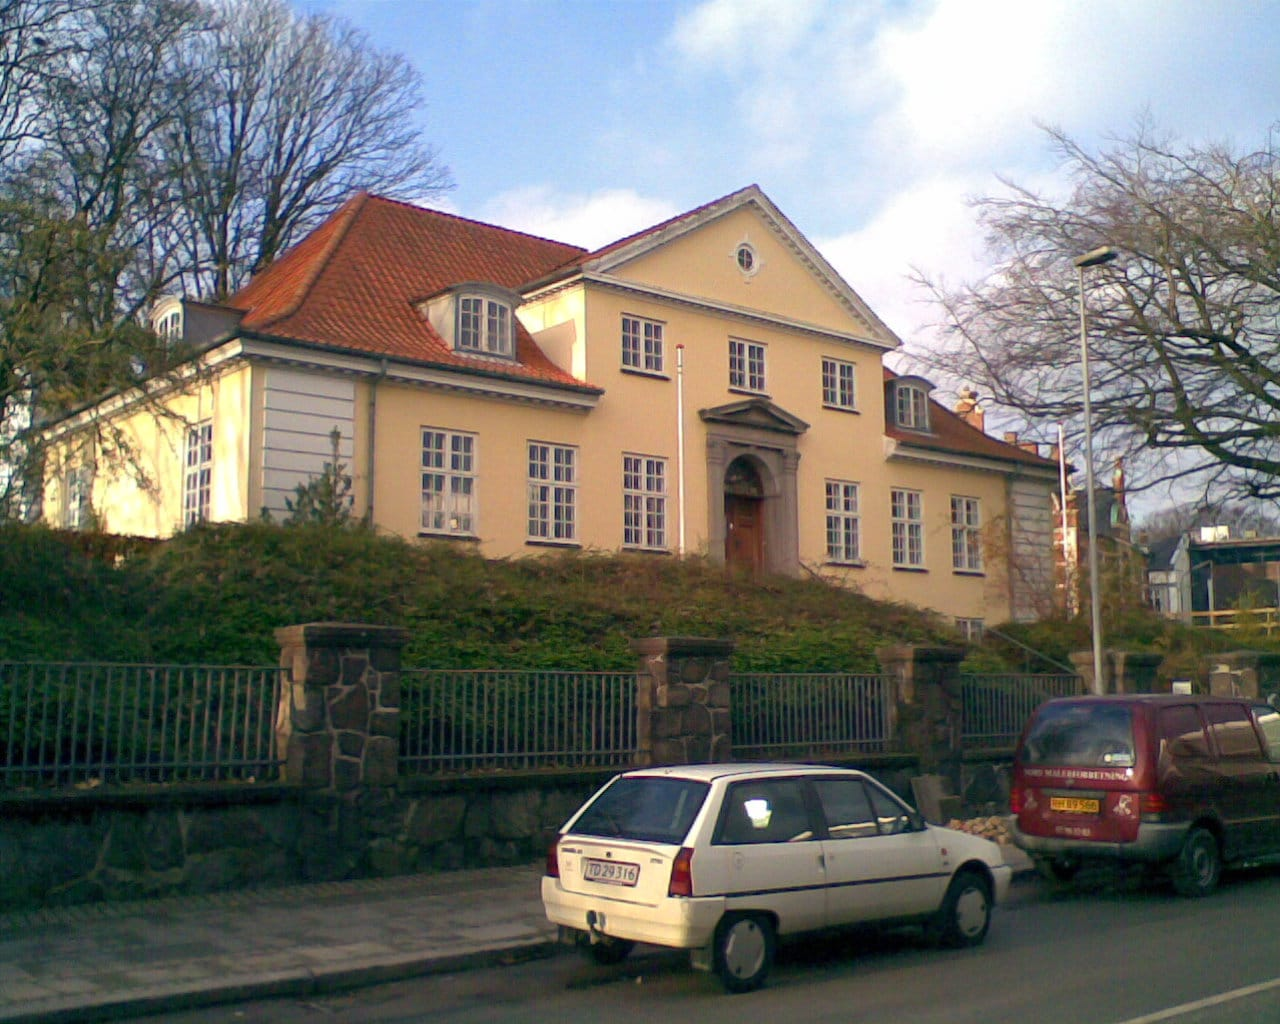 Thisted Museum Thy seværdigheder